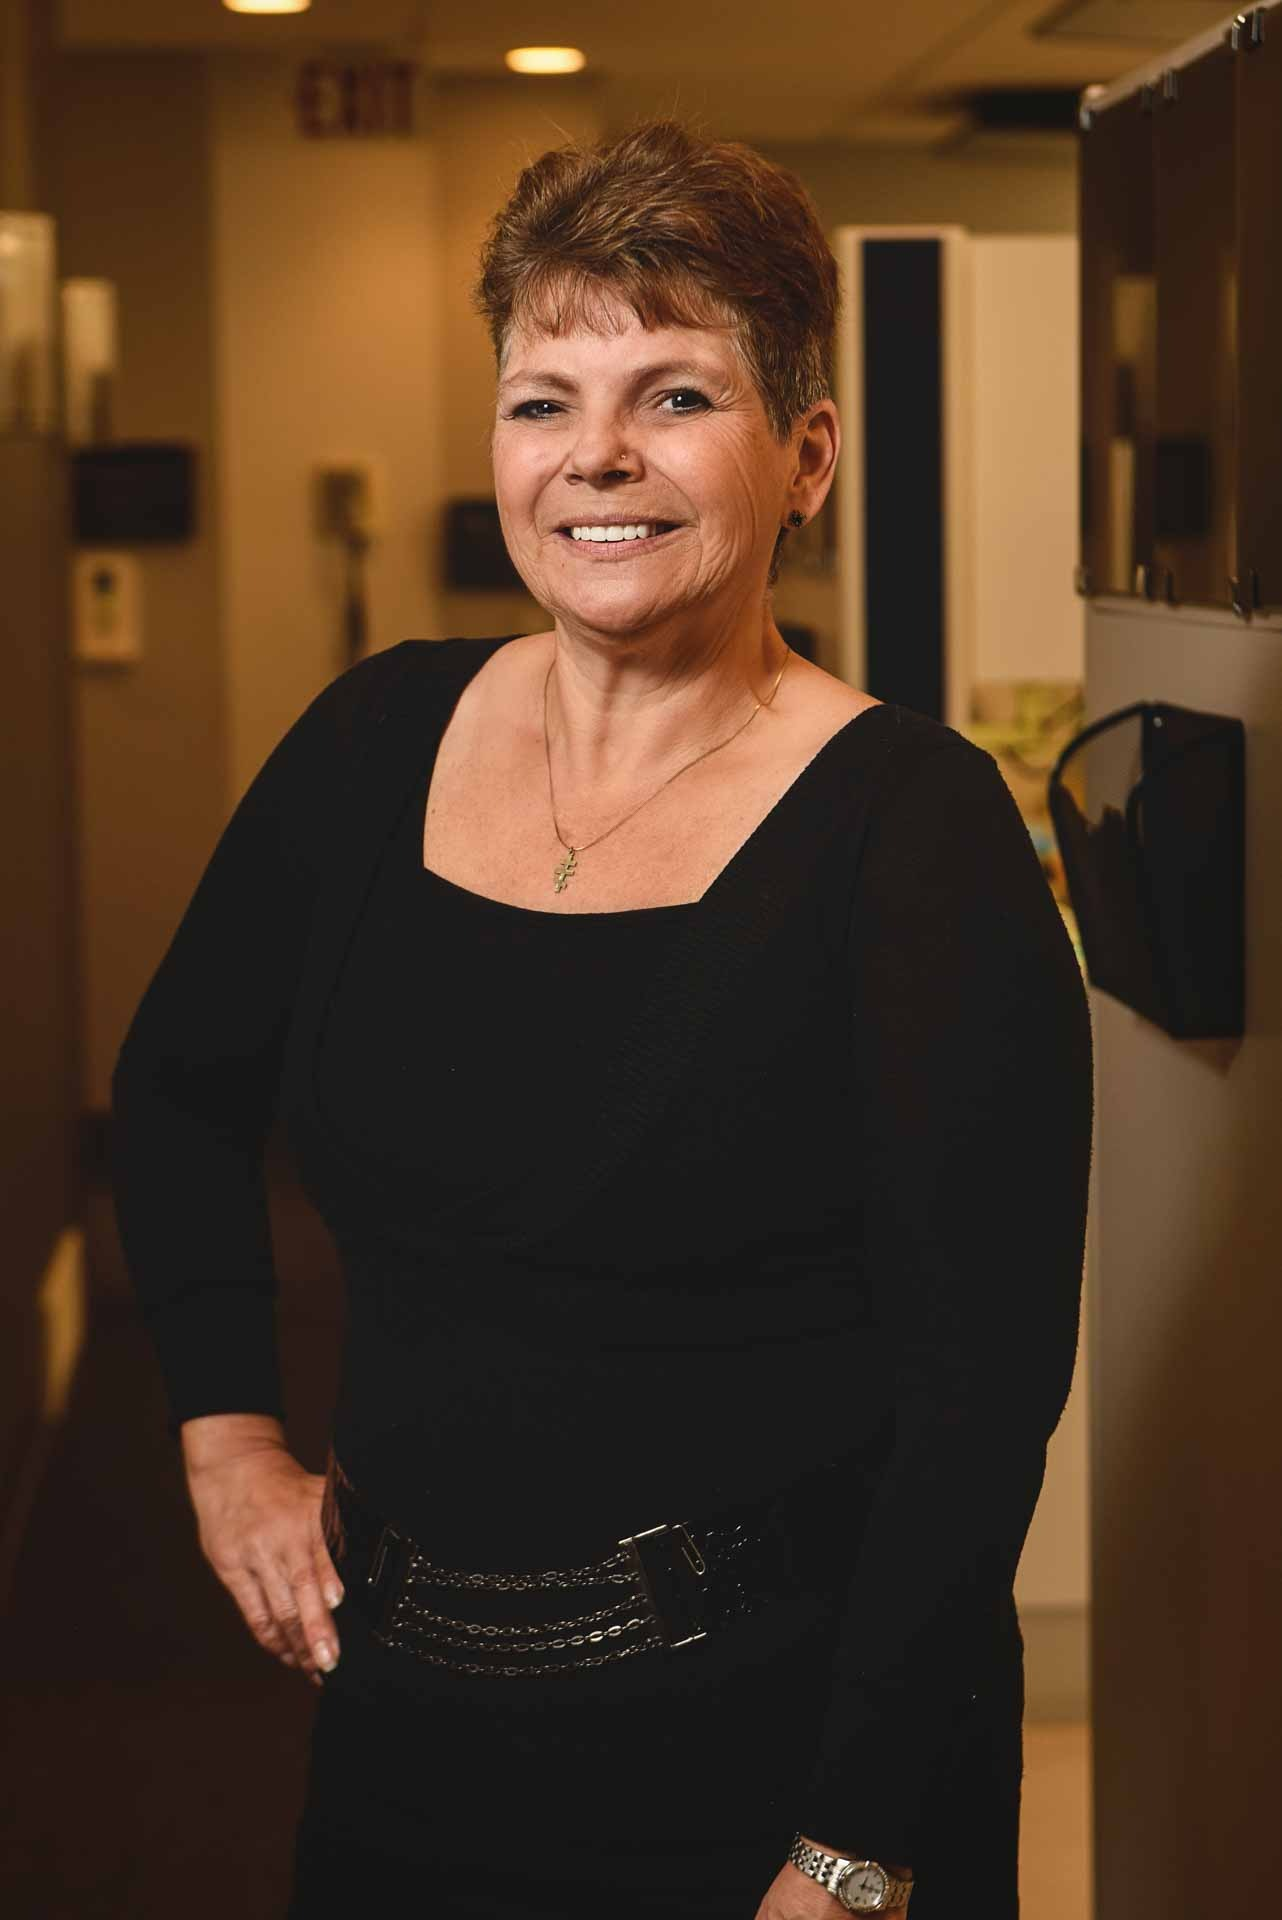 Sherry | Reception | Tooth Suite Family Dentistry | Lloydminster Family Dentist